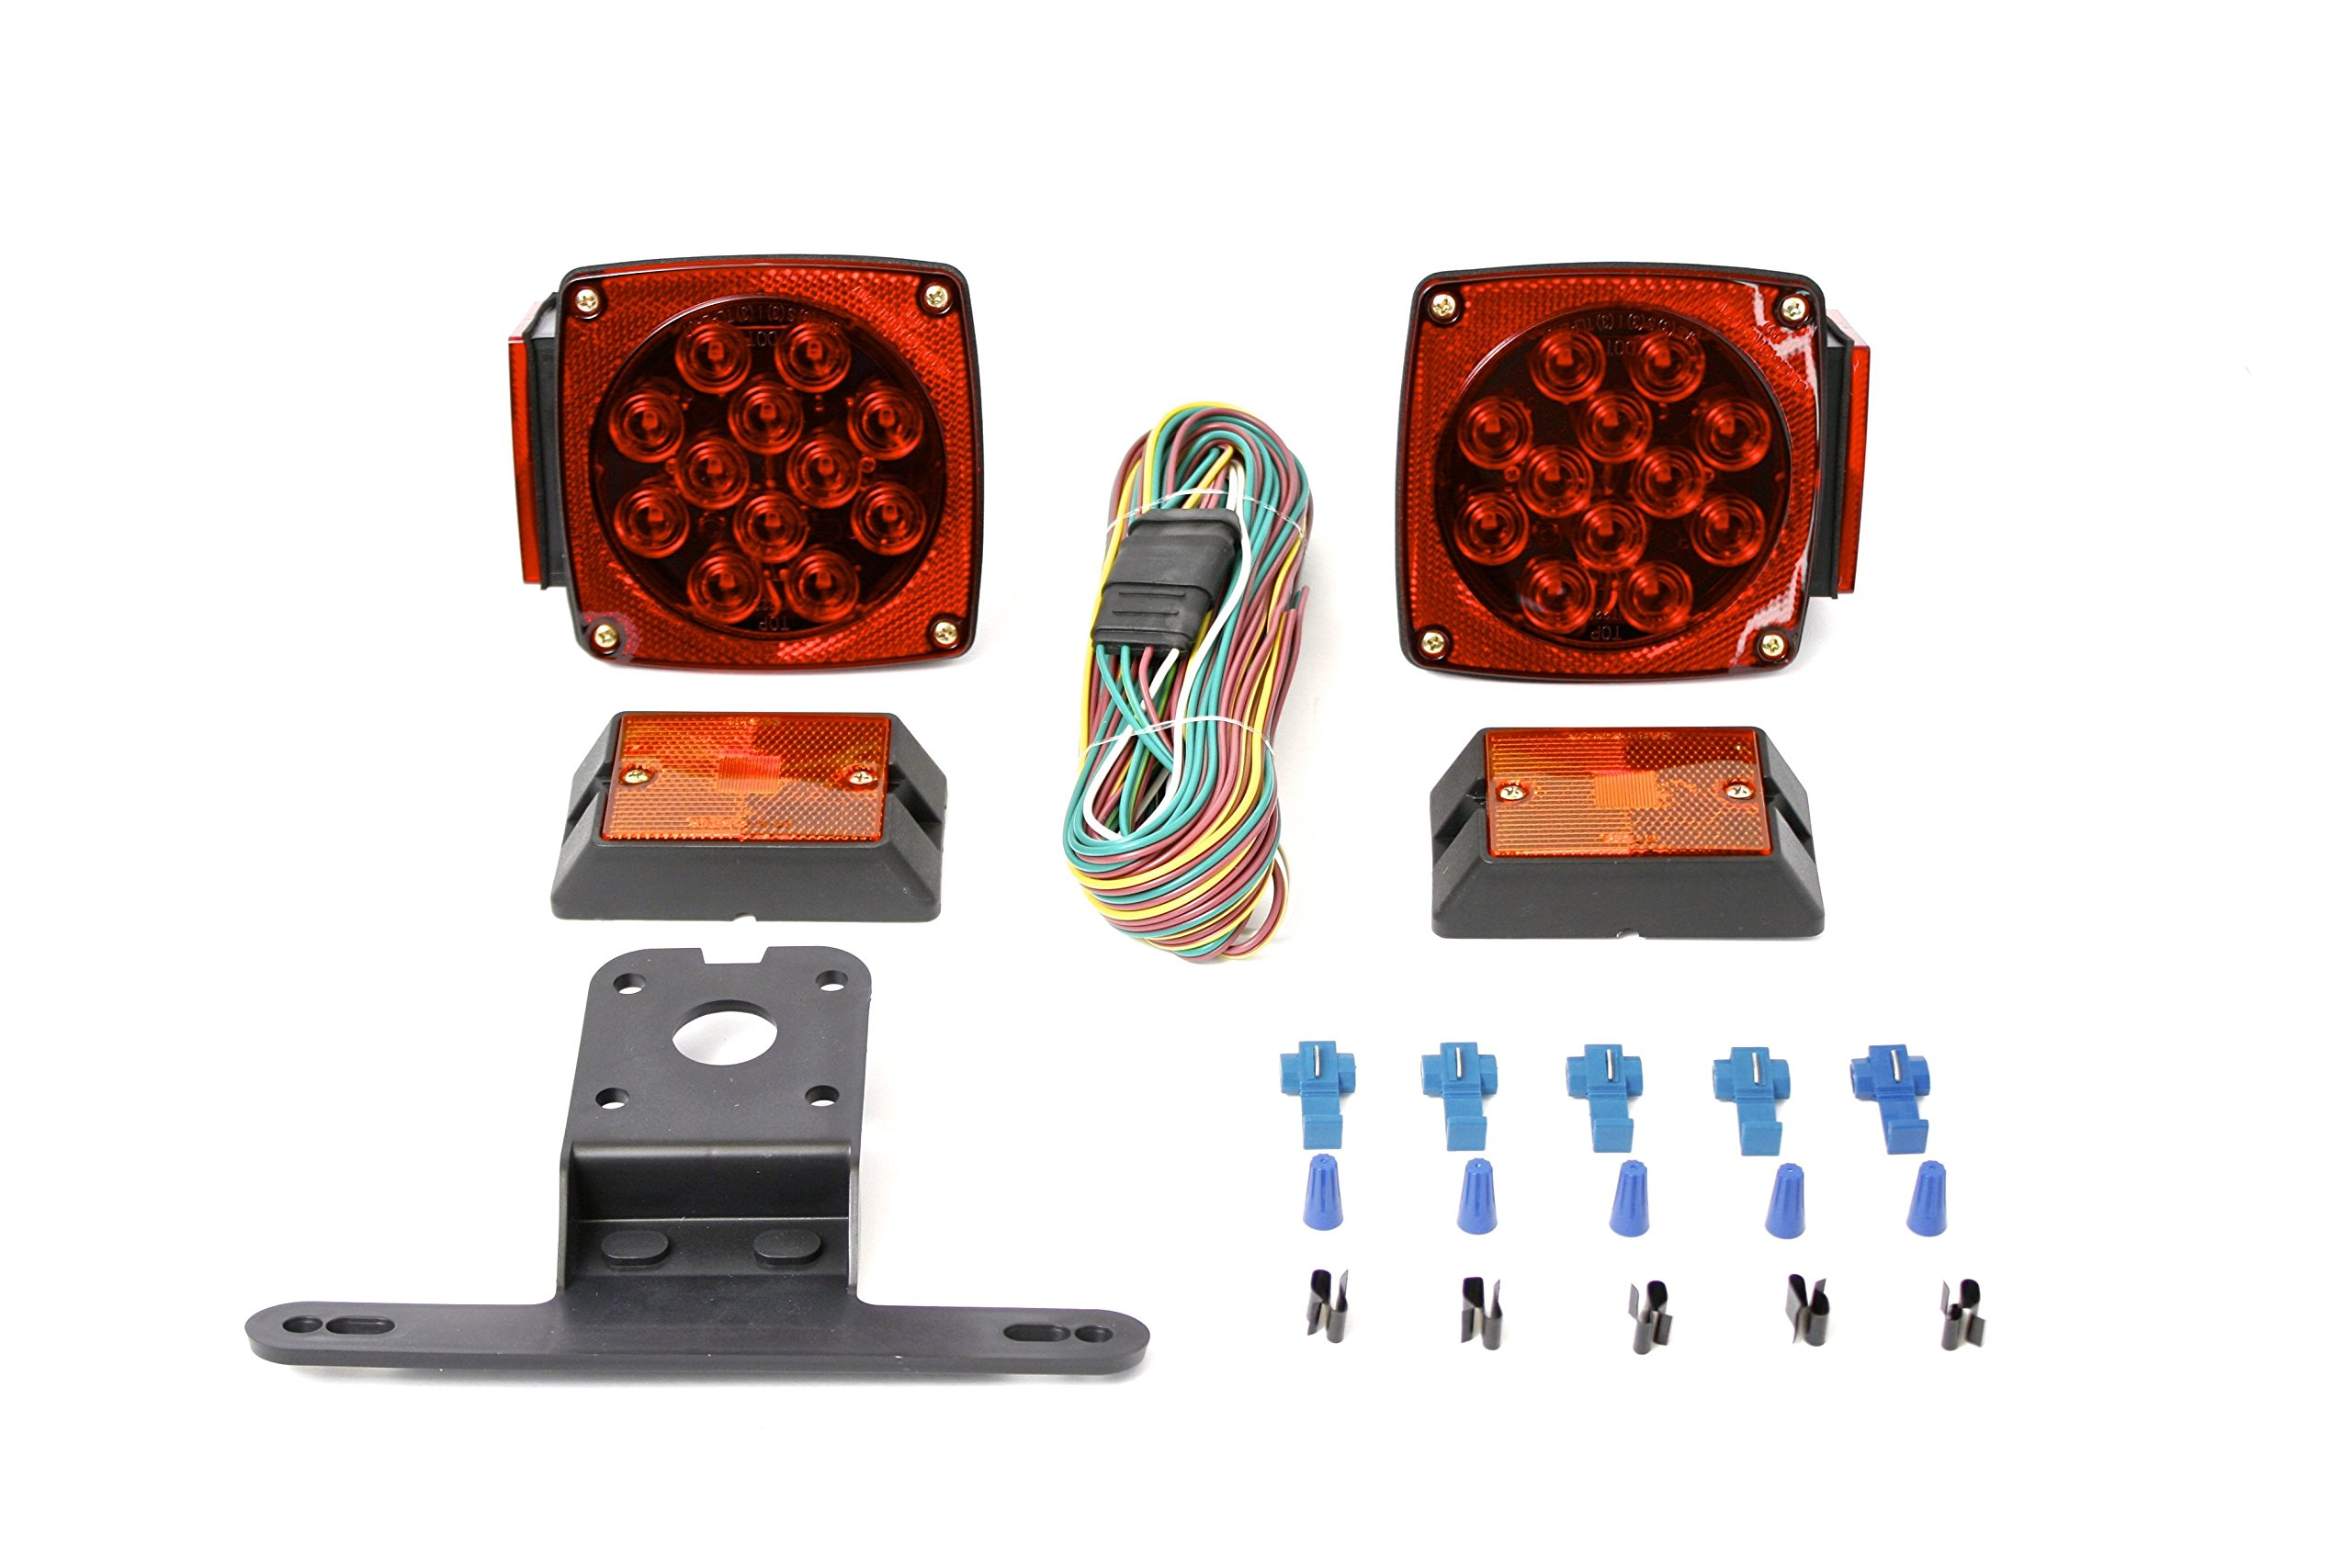 MaxxHaul 70205 12V All LED Submersible Trailer Light Kit by MaxxHaul